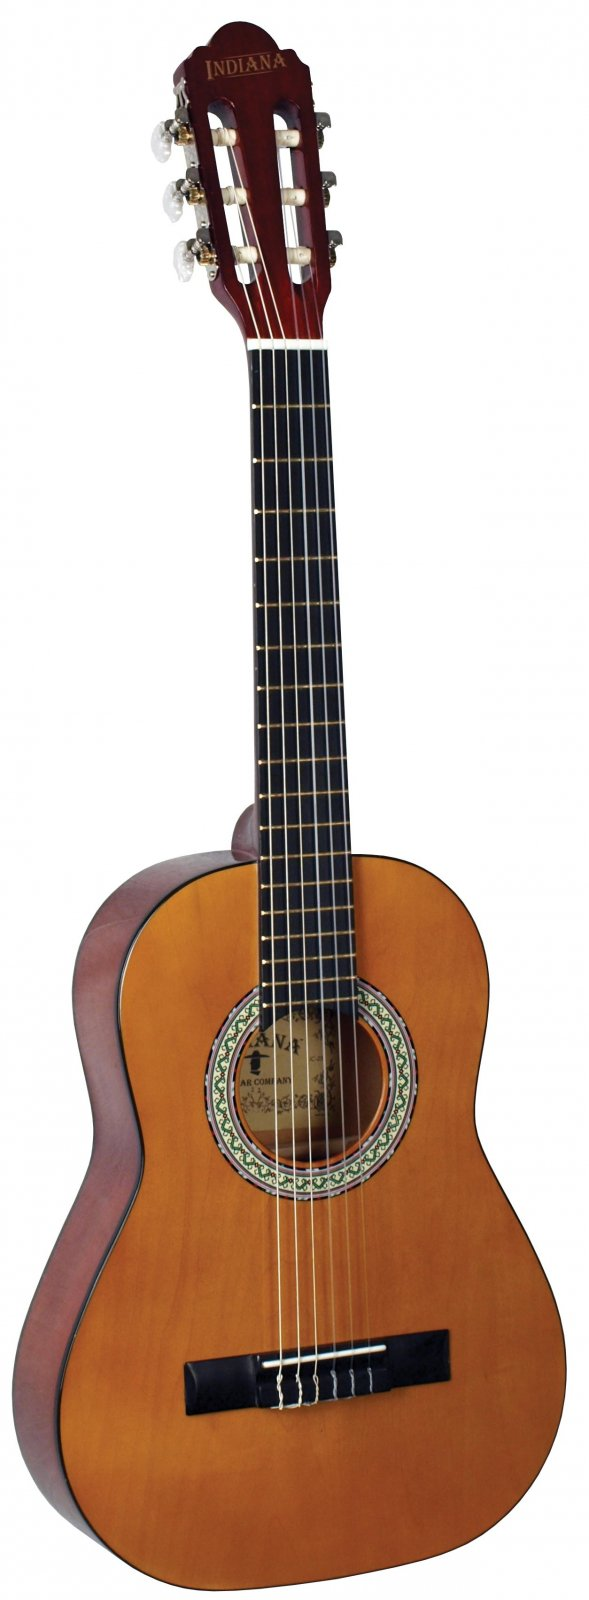 Indiana IC-34 3/4 Classical Guitar